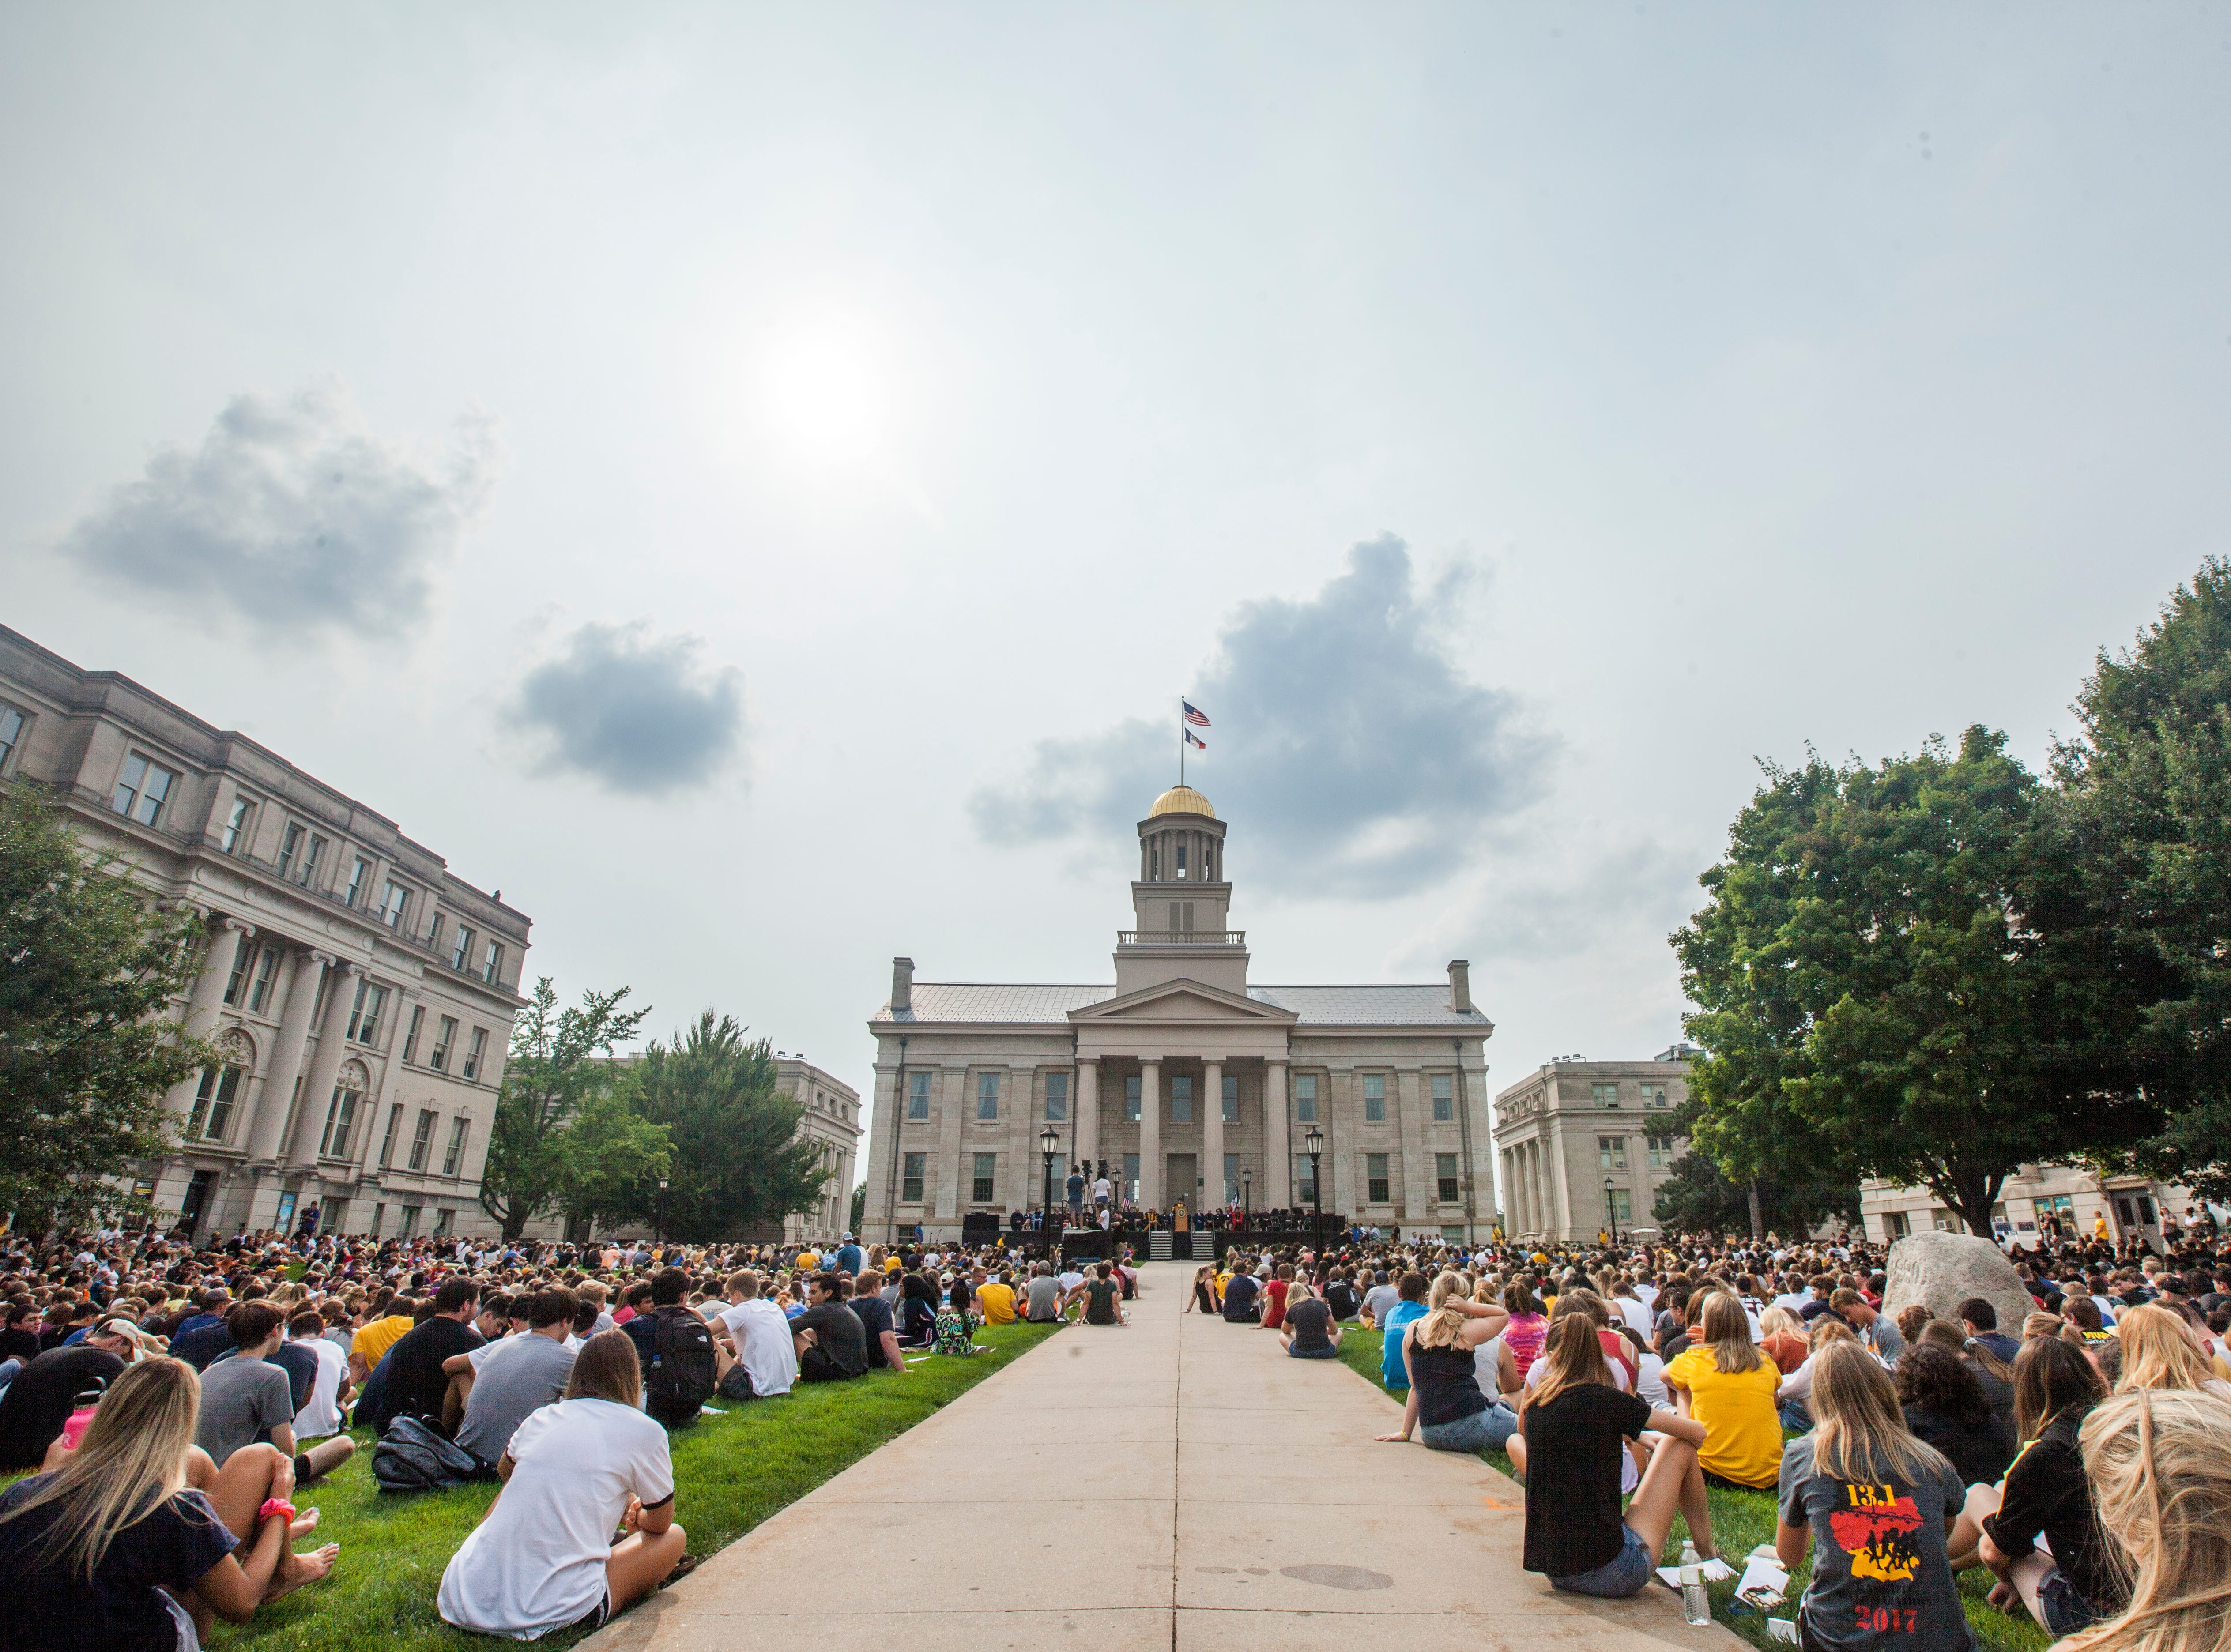 Students listen during the University of Iowa class of 2022 convocation on Sunday, Aug. 19, 2018, at the Pentacrest in Iowa City.